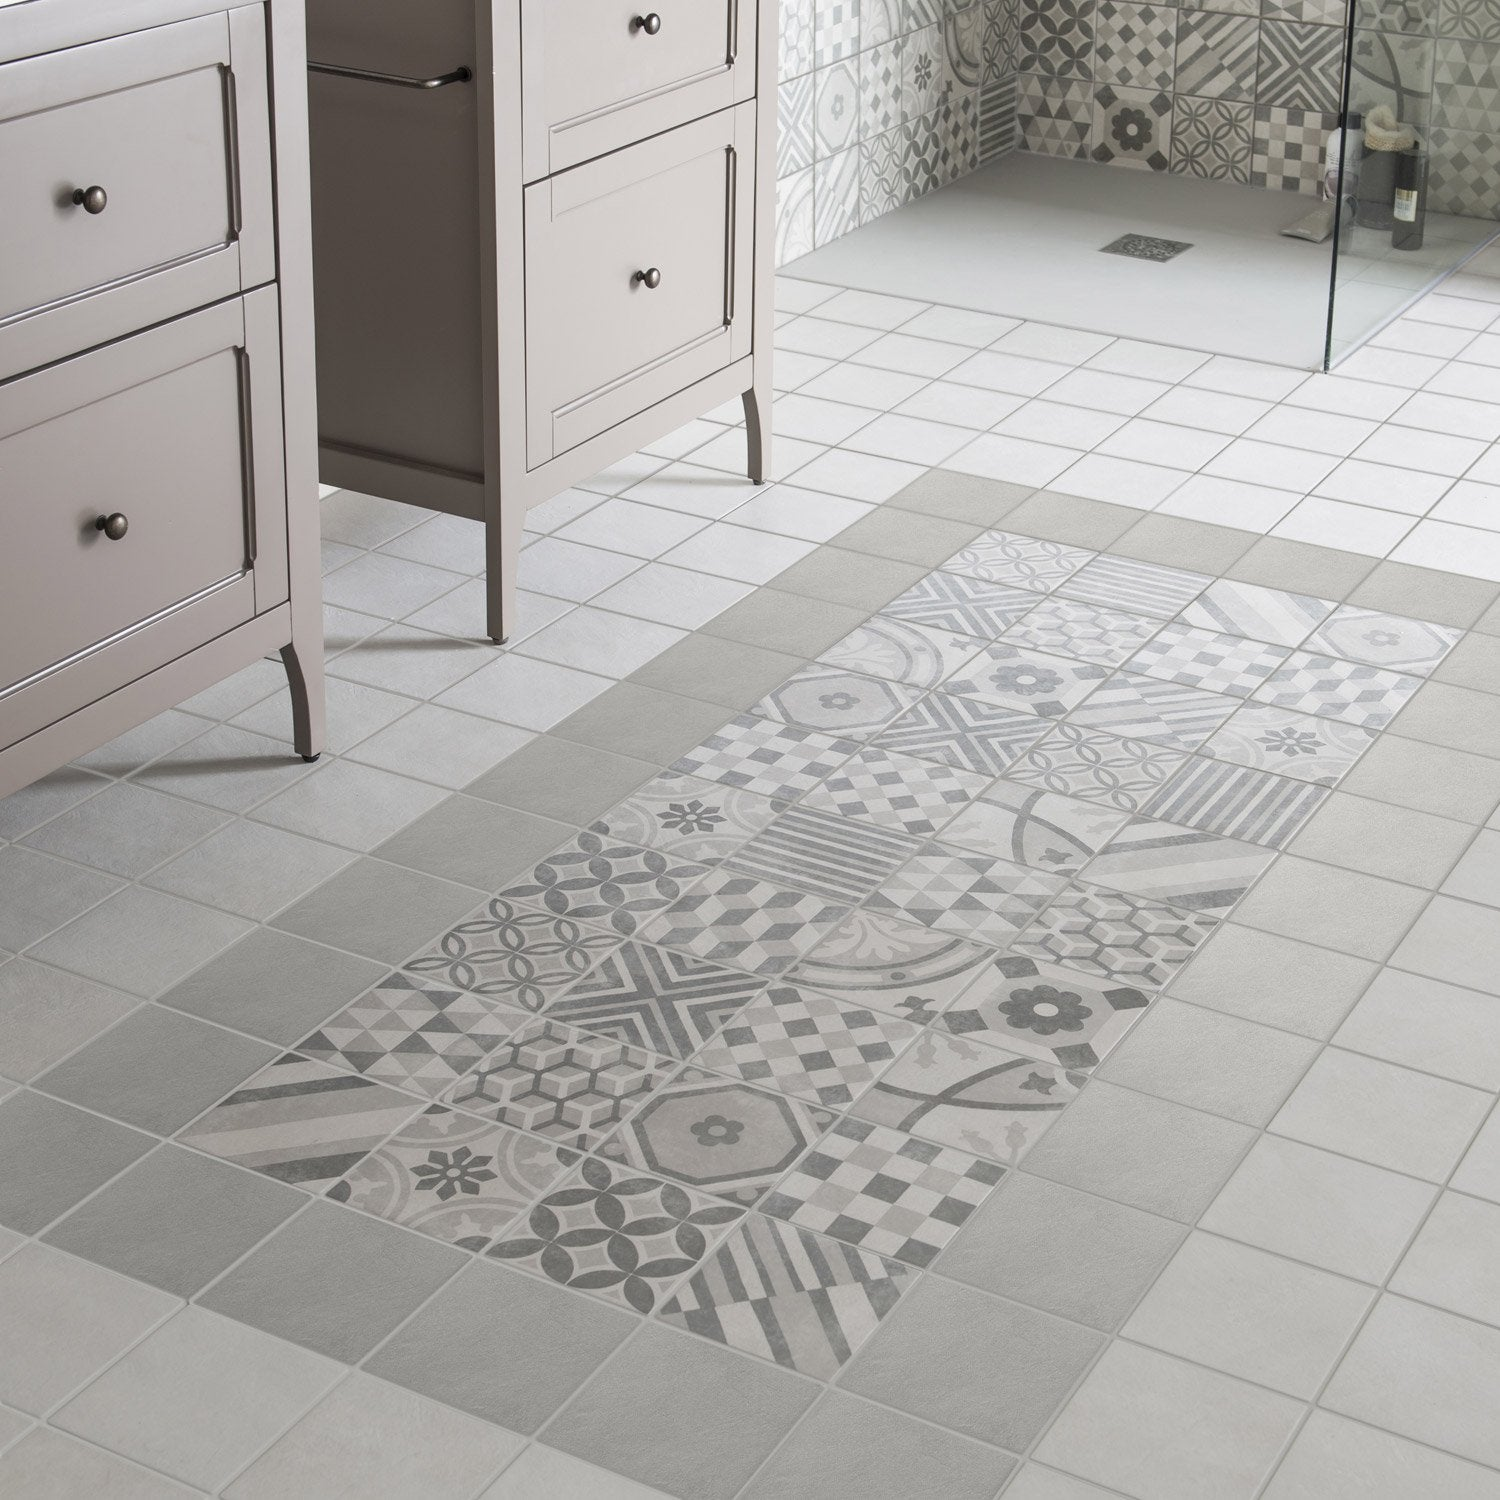 Carrelage sol et mur gris elliot x cm leroy for Carrelage grand carreau salle de bain